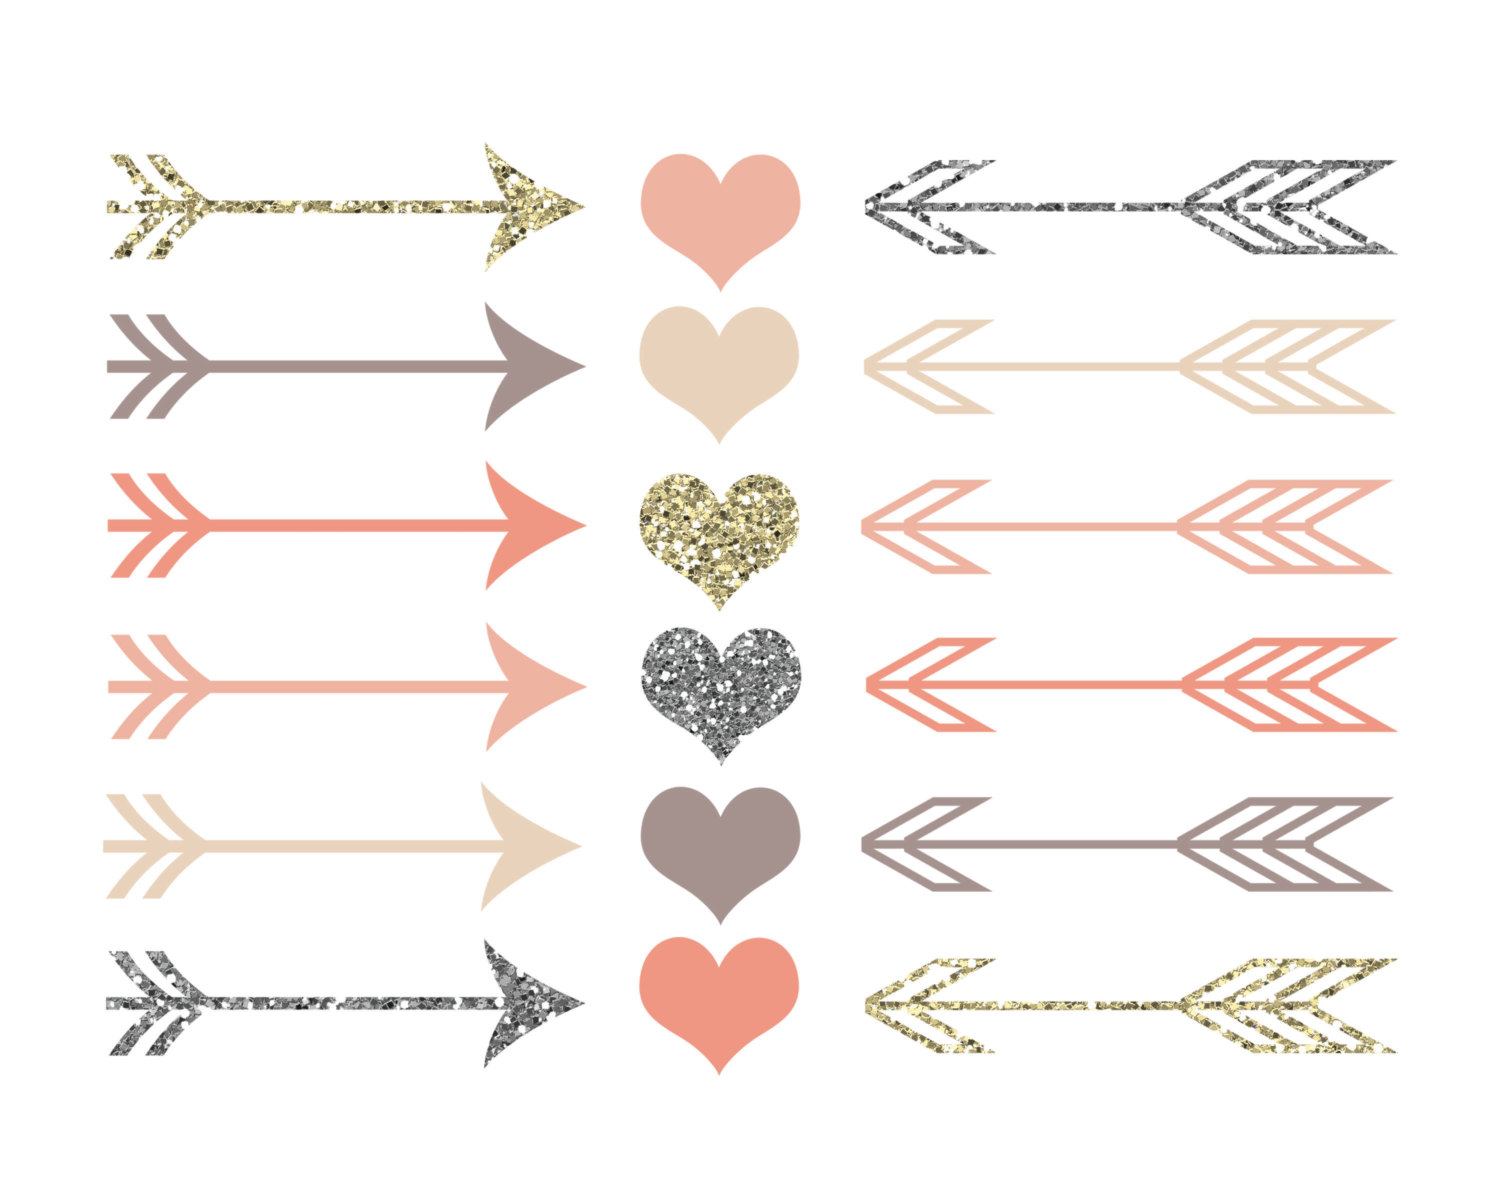 Rustic arrows and kid. Arrow with heart clipart